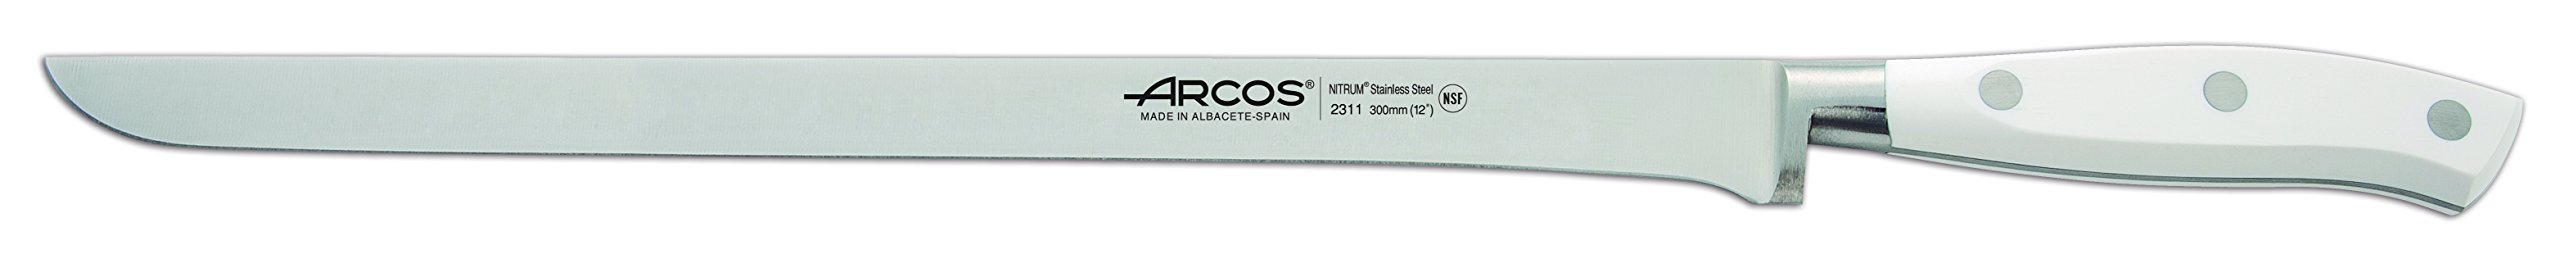 Arcos Riviera Forged Slicing Flexible Ham Knife with White Handle, 12-Inch by ARCOS